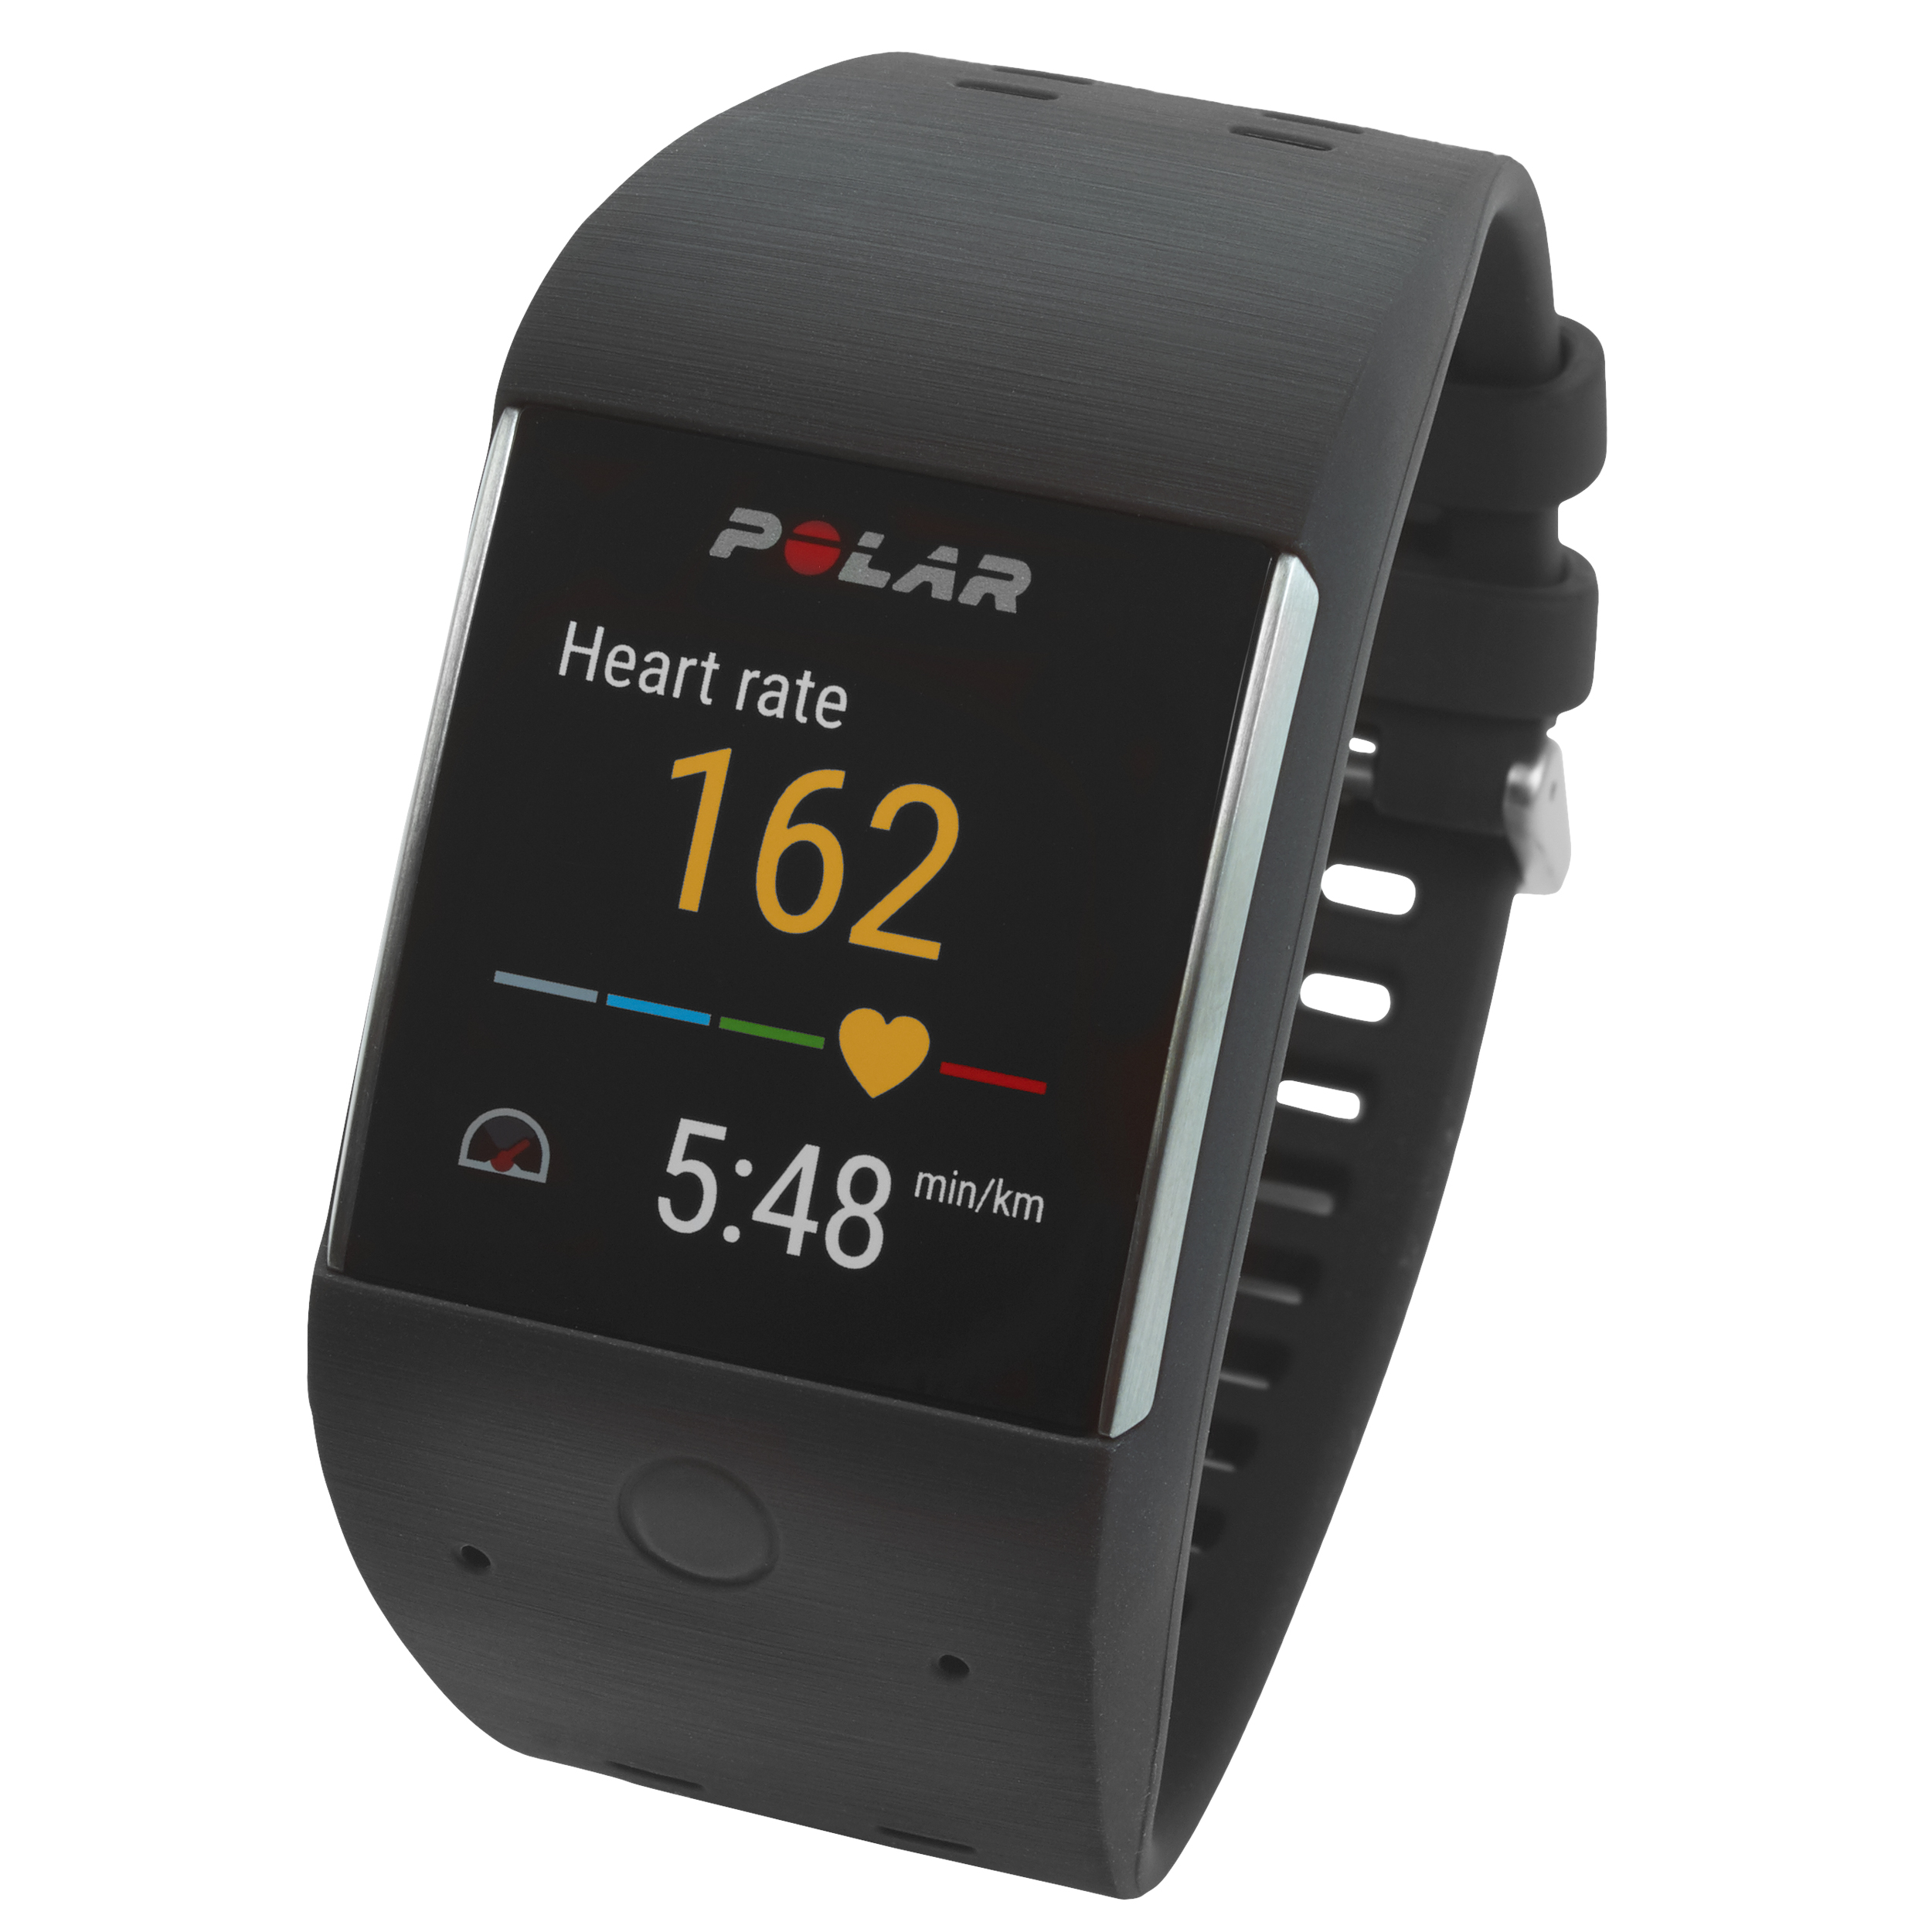 Polar Sport Smartwatch  - Tracks daily activity, training sessions and fitness goals - Waterproof up to 10 m - Integrated GPS and Wi-Fi